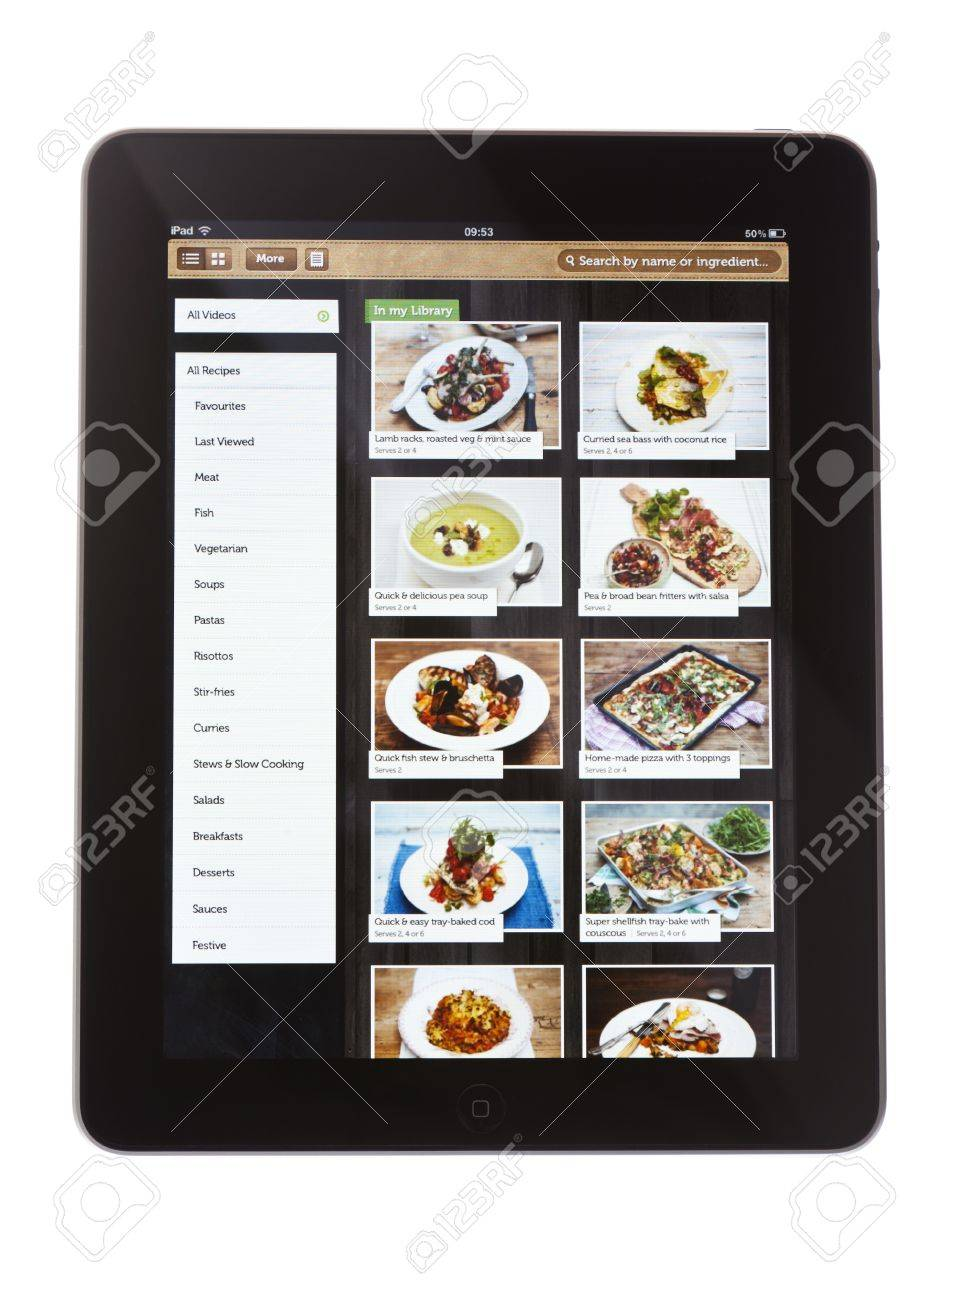 Bath United Kingdom November 9 2011 An Apple Ipad Against Stock Photo Picture And Royalty Free Image Image 19415914